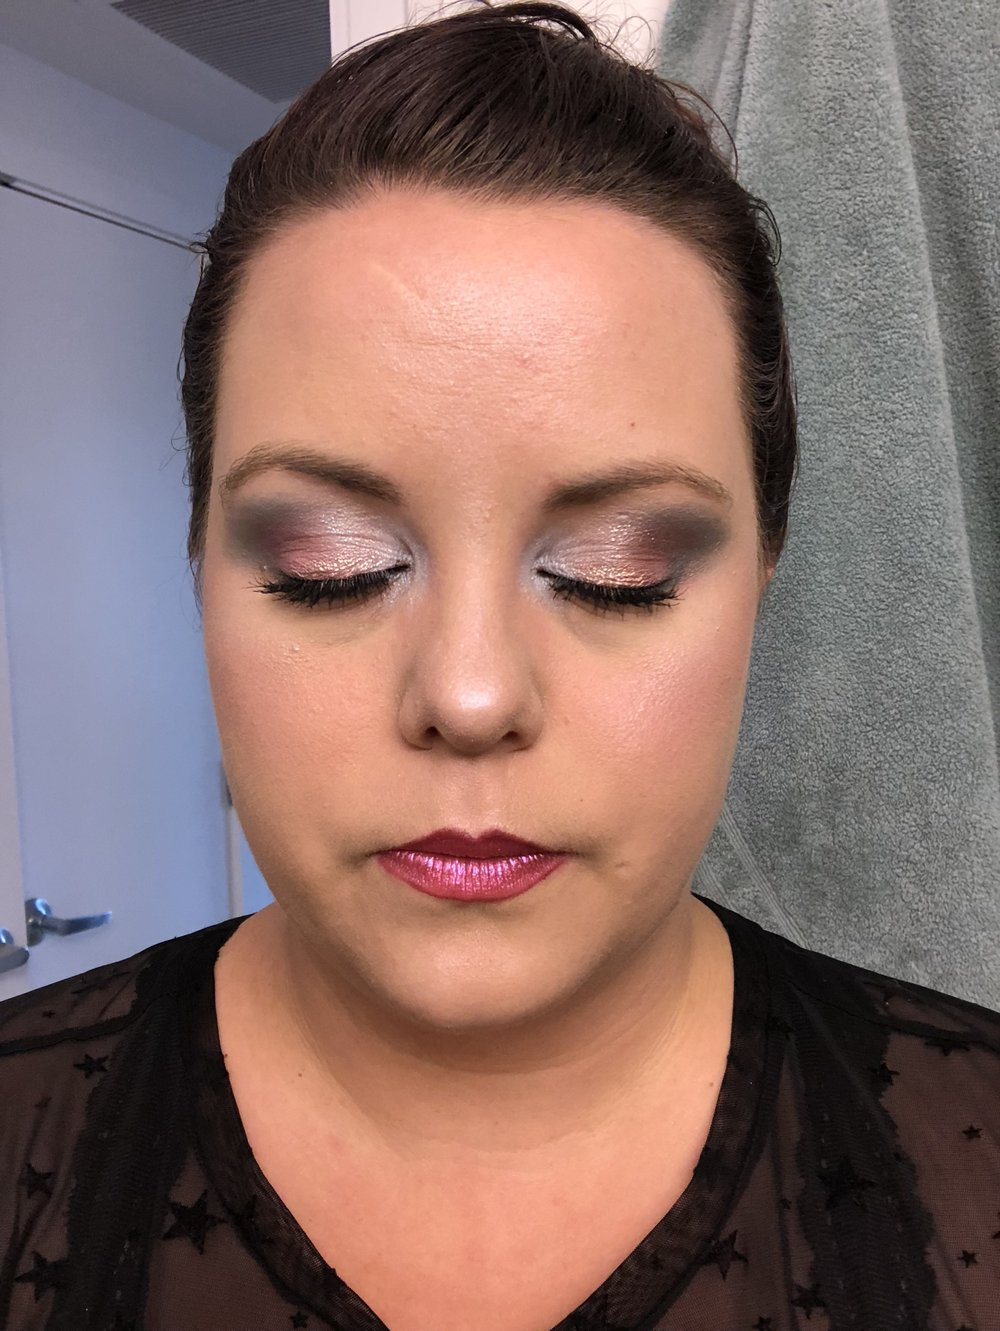 Amanda loves makeup - While there is def a lot still to learn Amanda has recently fallen in love (thanks to Jordan) with Sephora and all the makeup things. The most recent obsessions? Highlighter and Morphe palettes.